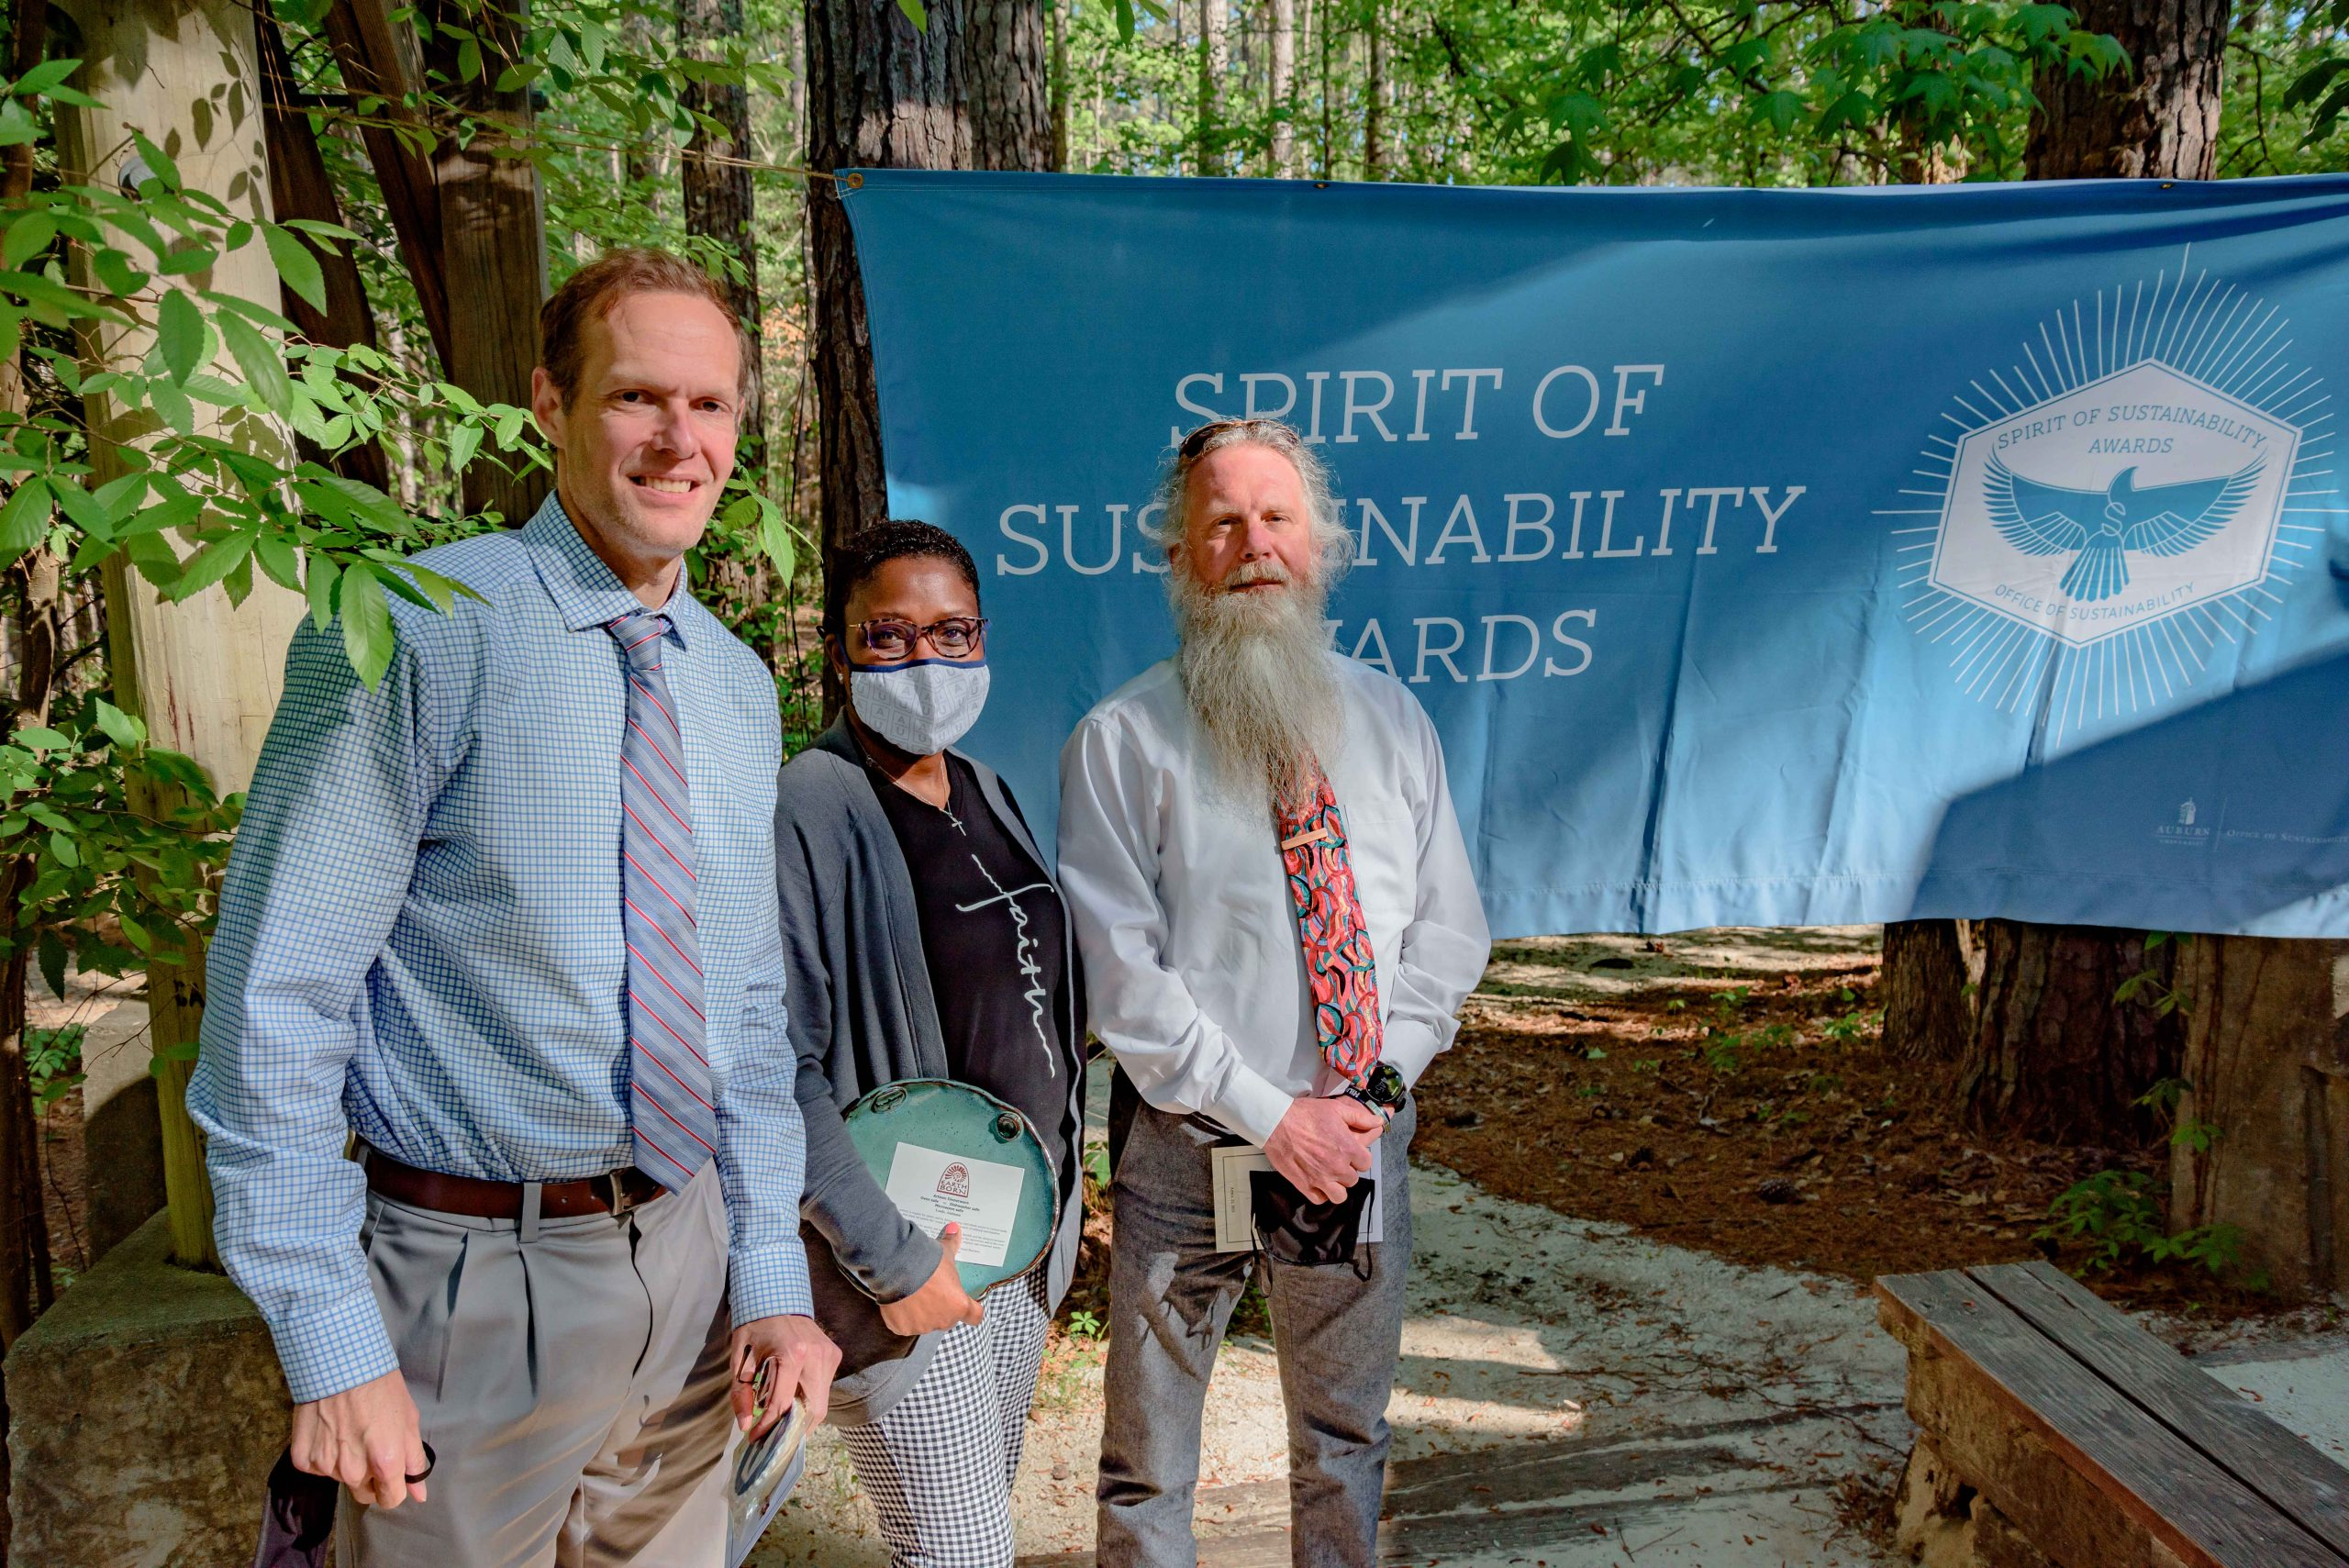 Staff from Student Counseling and Psychological Services with their Spirit of Sustainability Award